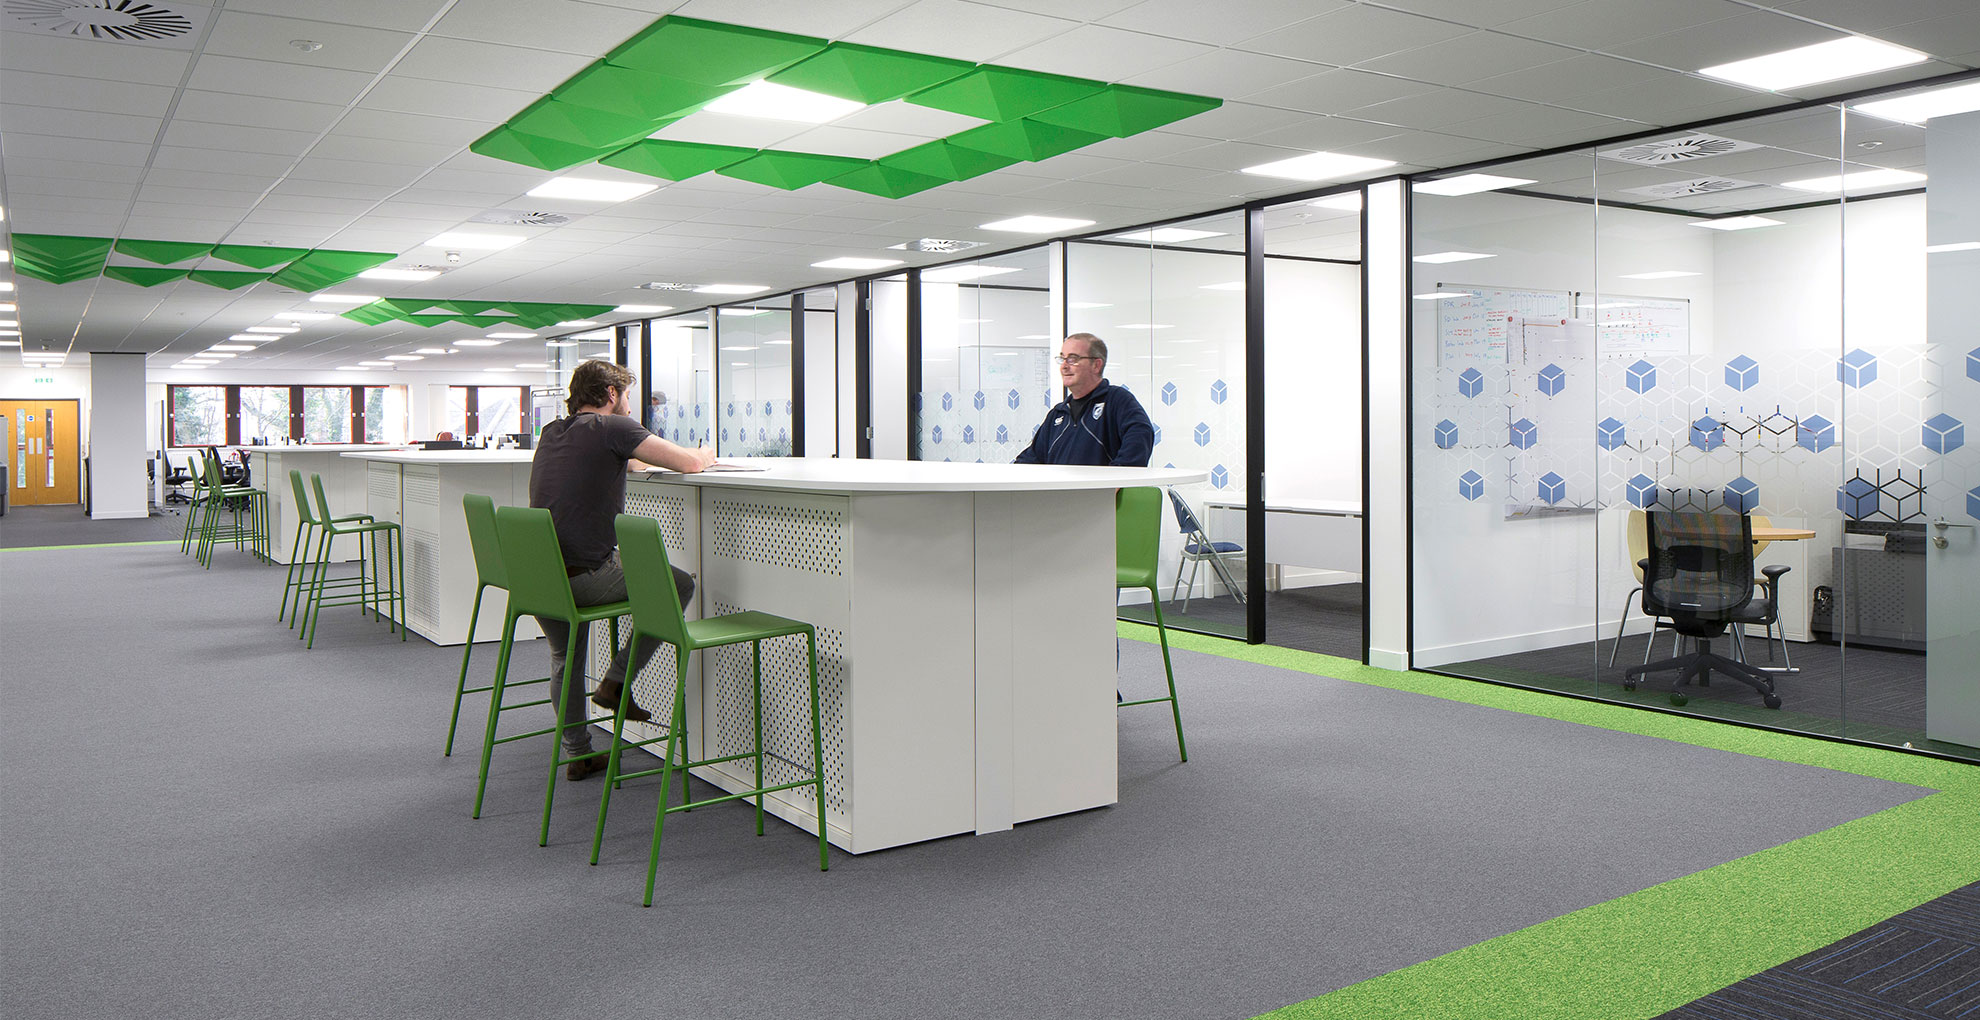 What Your Office Design Says About You To Visitors And Interviewees - Image Of Cubic Transportation Systems Office - Image Via maris-interiors.co.uk